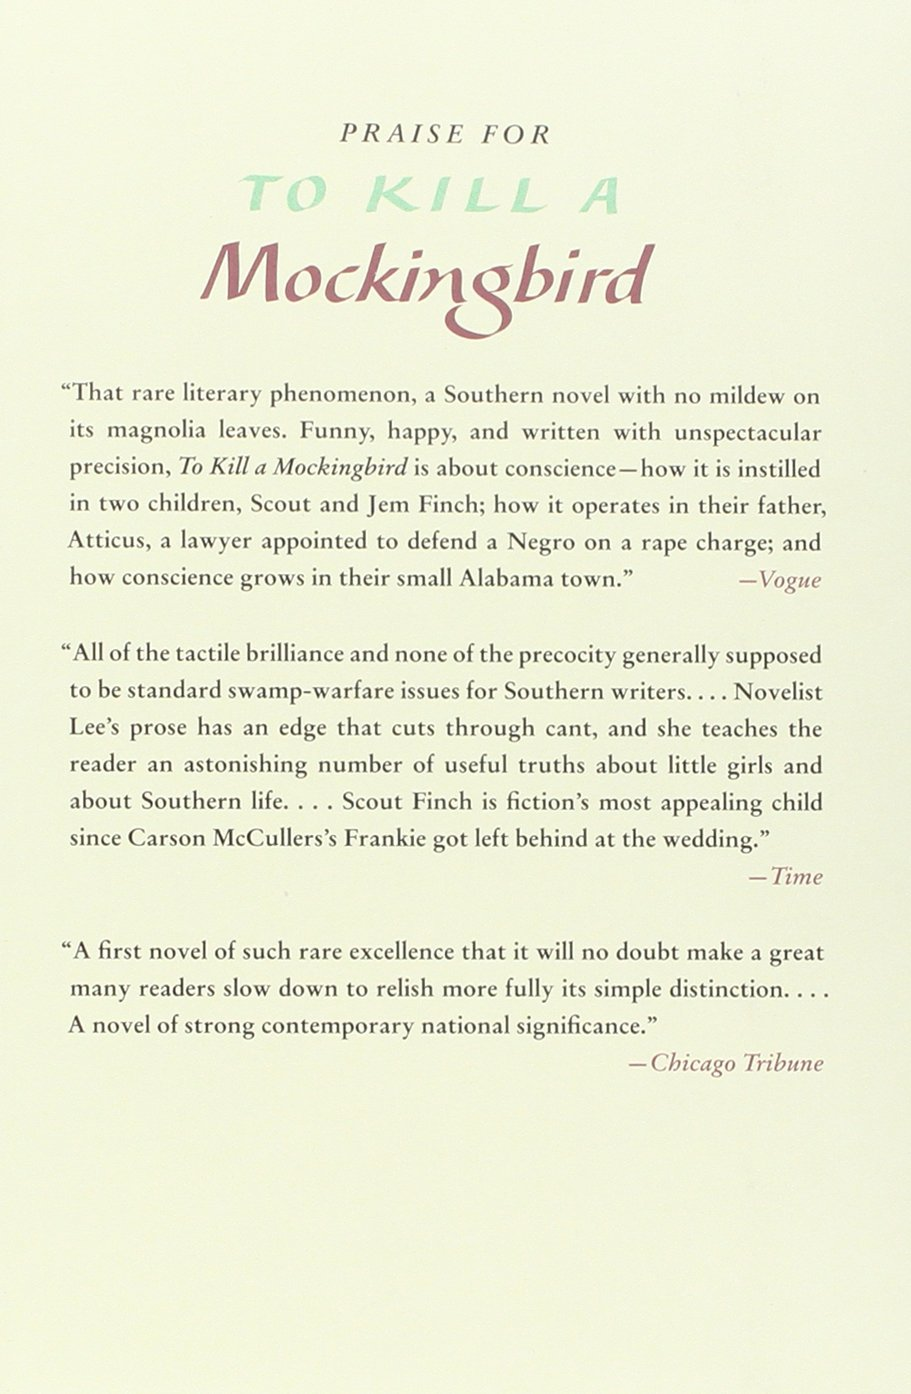 thesis statement to kill a mockingbird justice Ok, so i've developed a thesis statement about what harper lee says about justice in her novel: though ideally justice should be blind to race, gender, age, or otherwise, this principle is often disregarded.